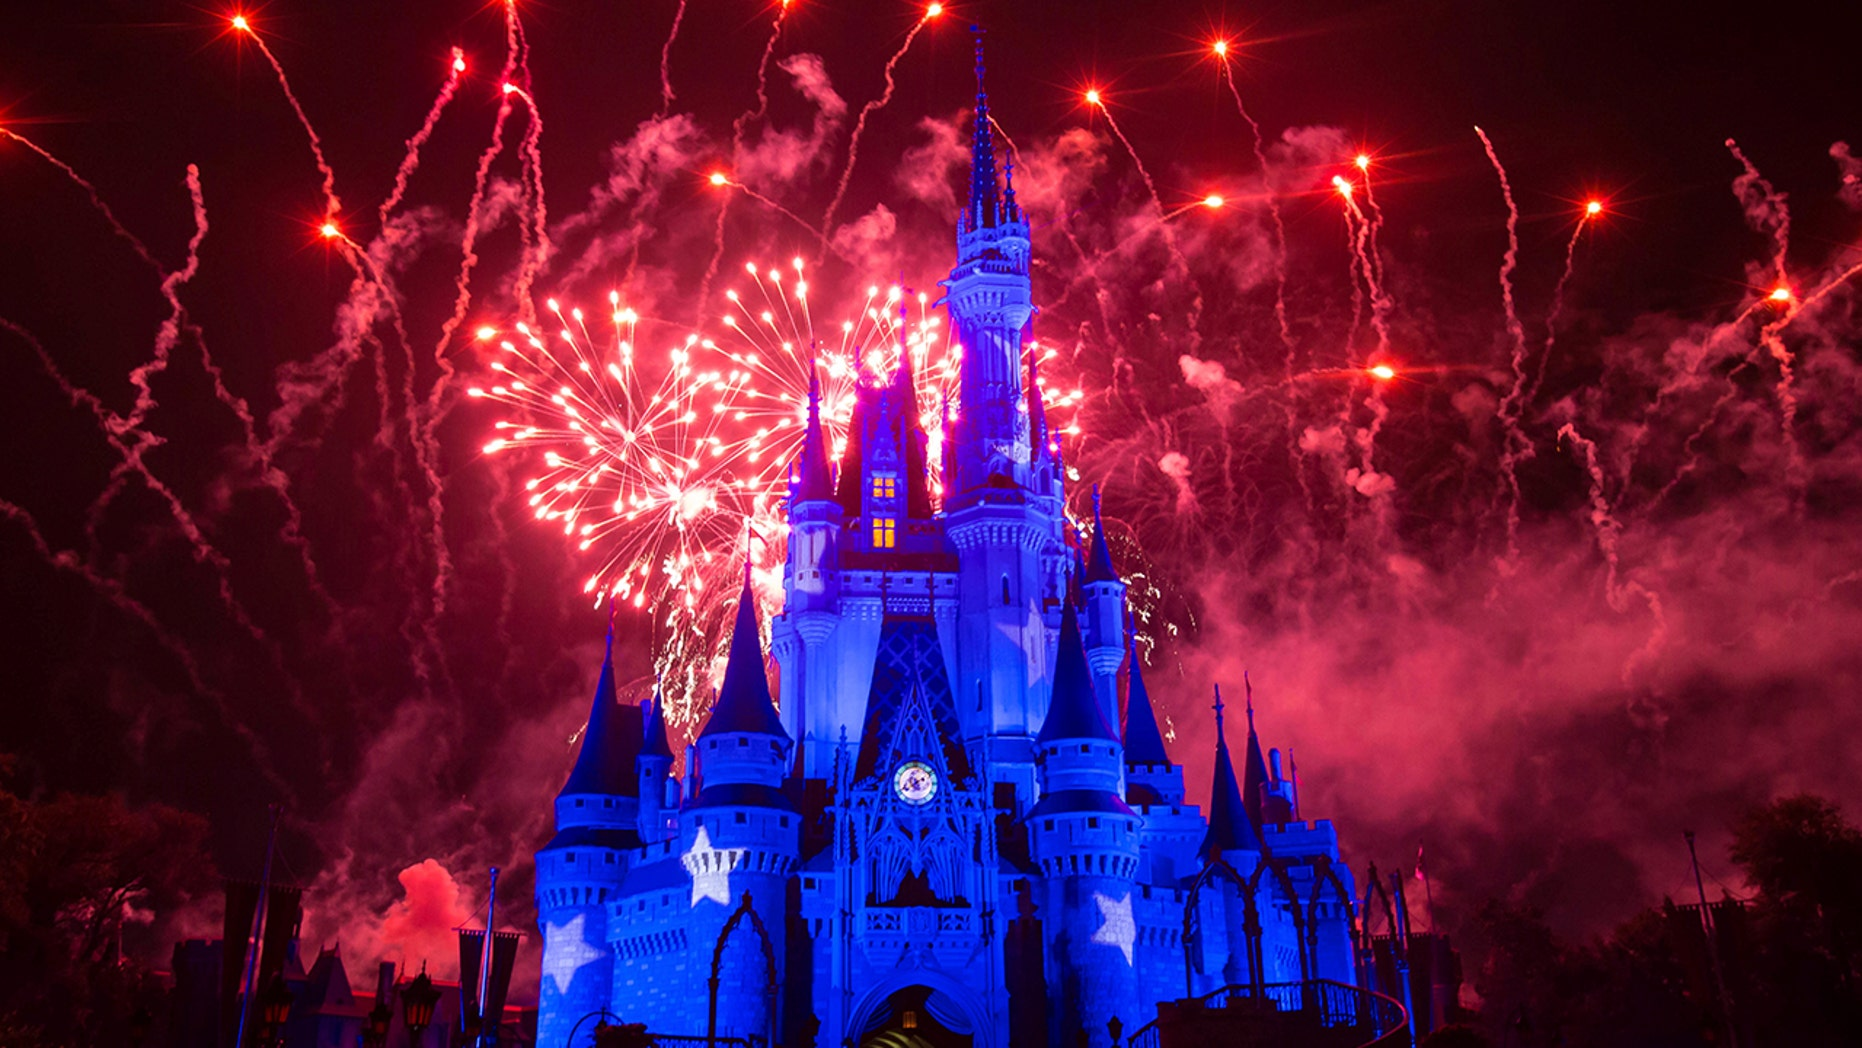 A man is suing Disney World after he got into an altercation with a park employee whom he claims ruined his marriage proposal.